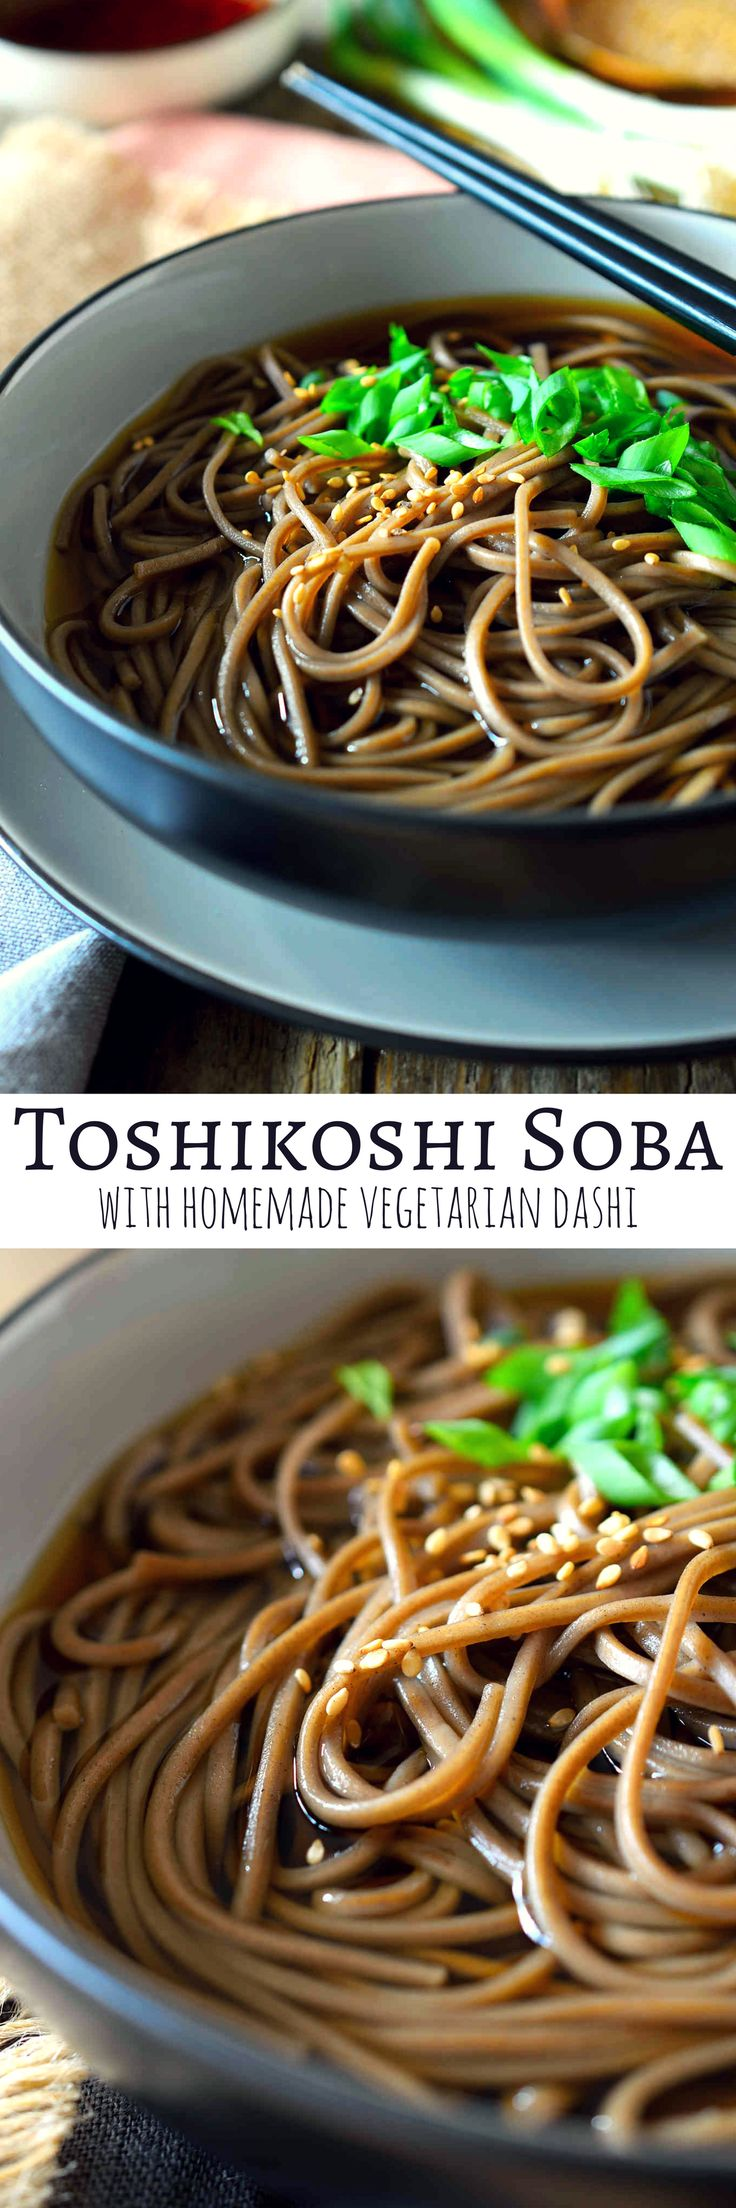 You don't need to wait until New Year's Eve to make this delicious toshikoshi soba recipe. This dish is extremely easy to make with just a simple and wonderful umami broth and nutty soba noodles. Sprinkle over some sesame seeds and chopped green onion for a bit of colour and crunch and you've got a lip-smacking, steaming bowl of soba noodle soup.